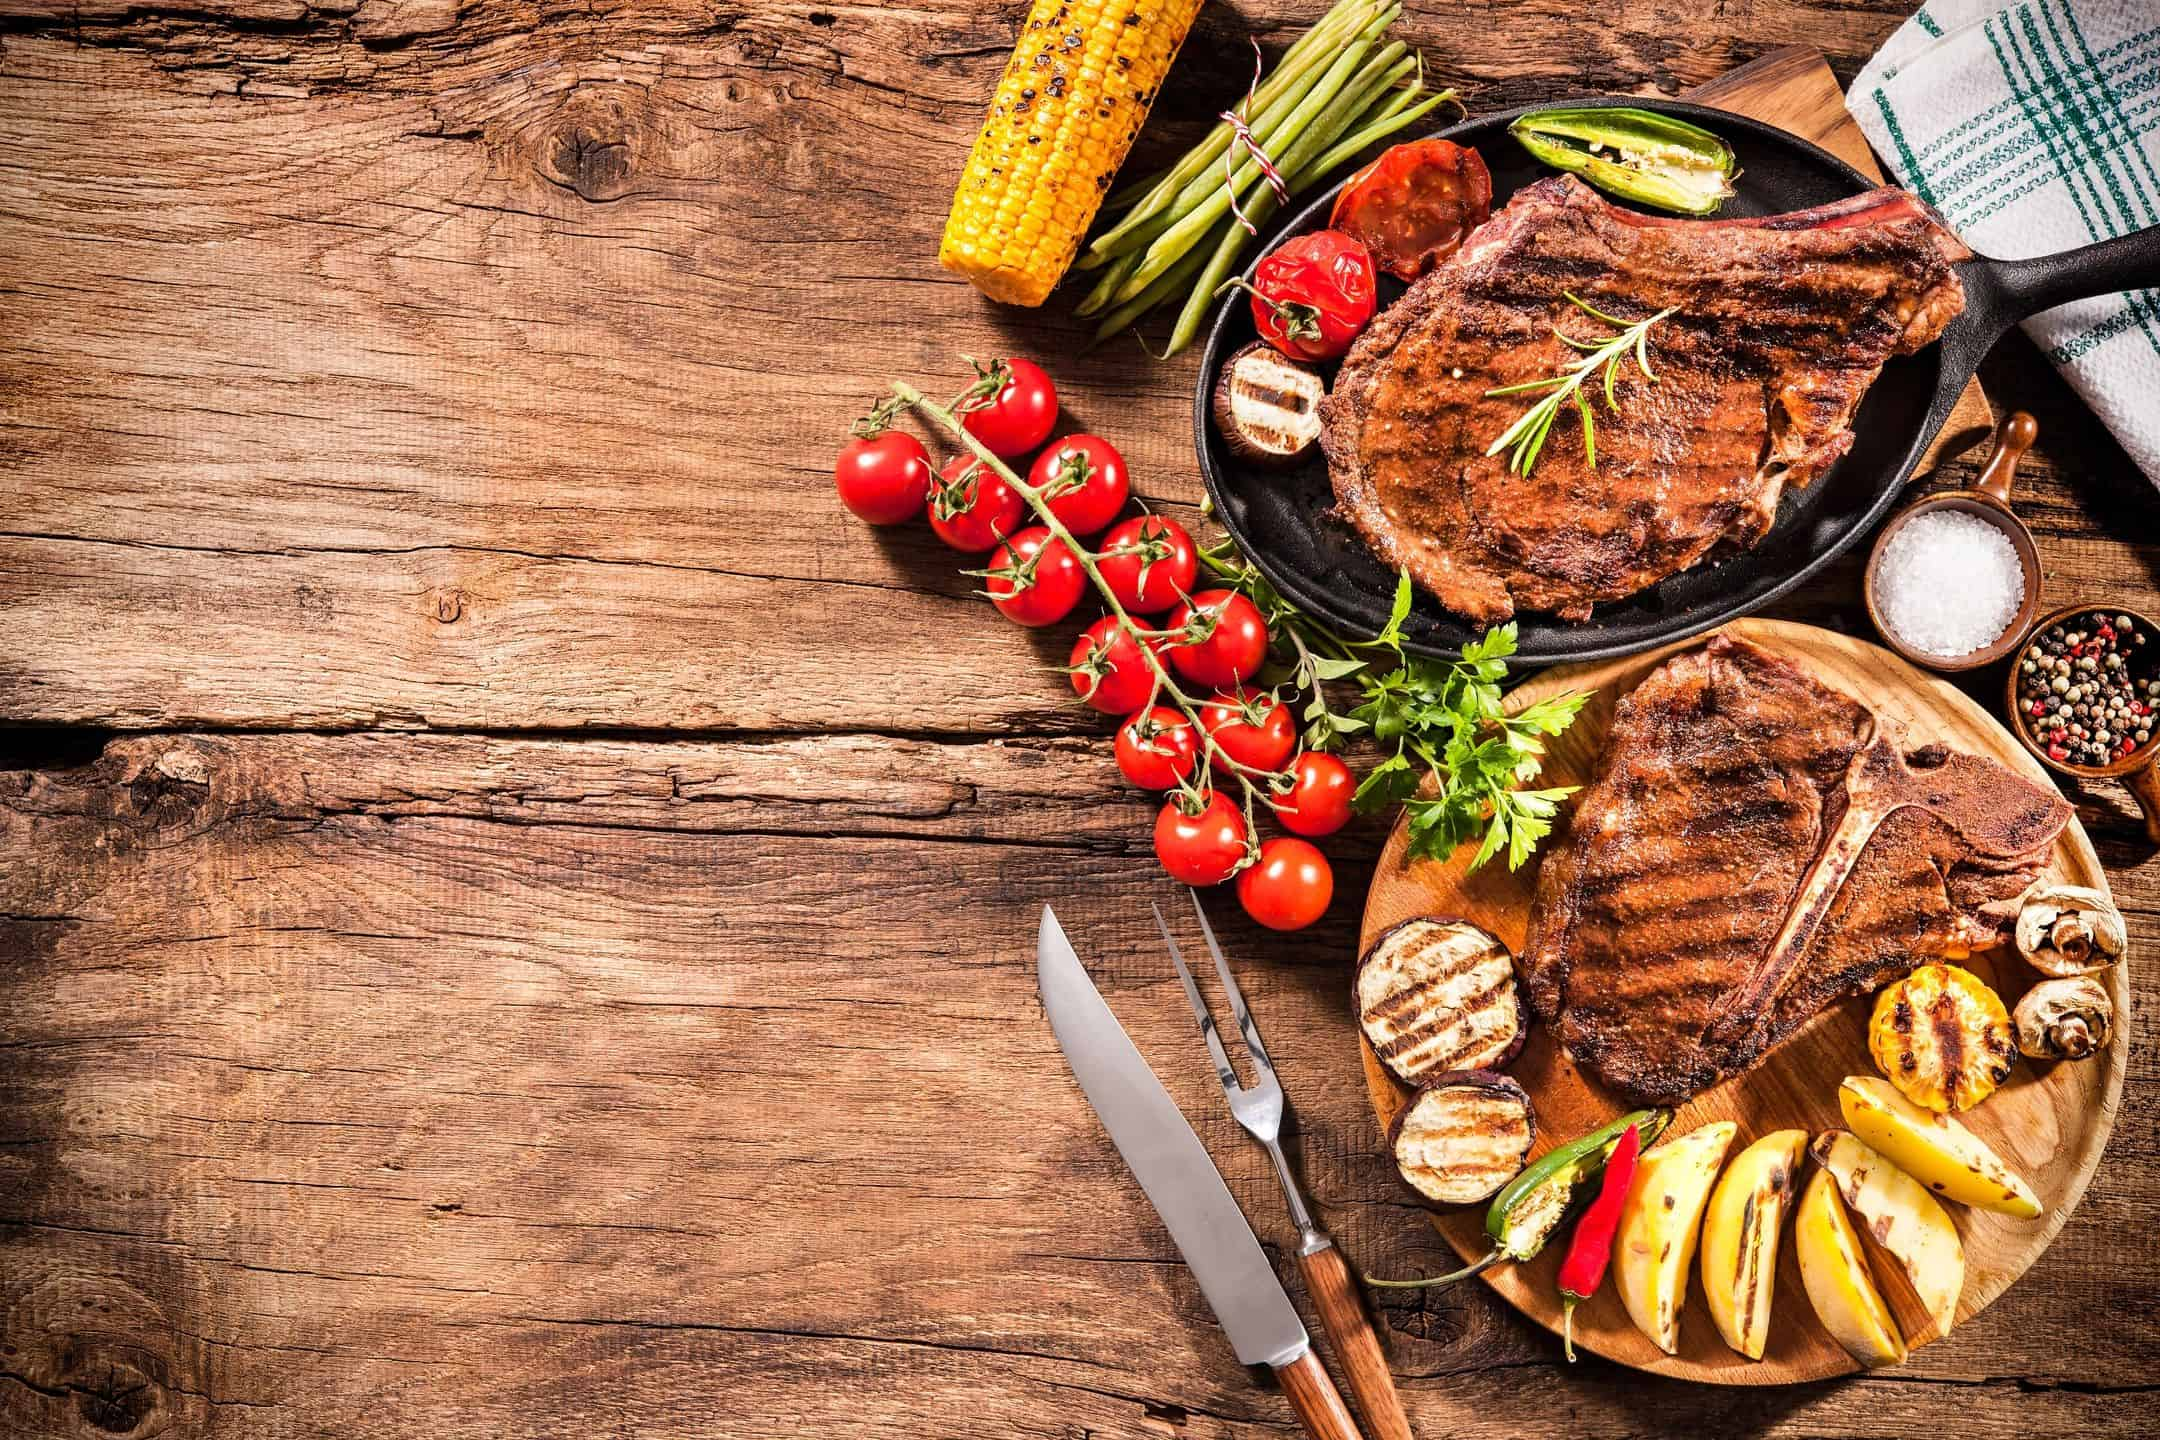 How to Build An Affordable Summer BBQ with ALDI @shawsimpleswaps